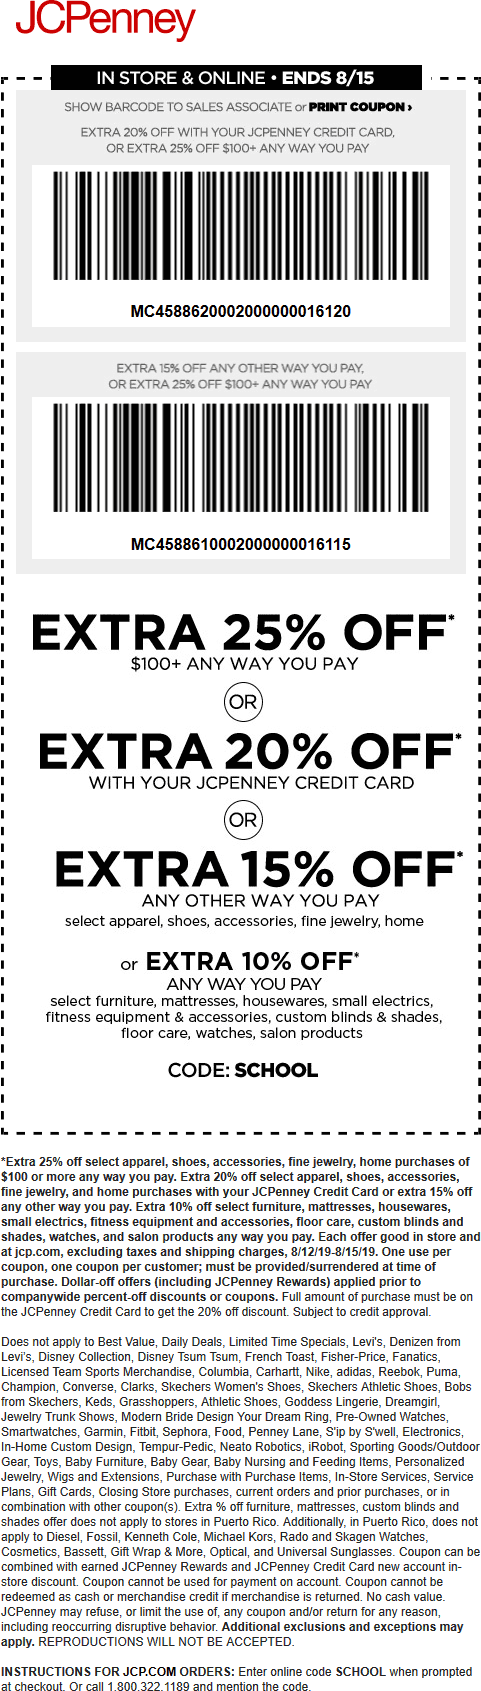 JCPenney Coupon November 2019 15-25% off at JCPenney, or online via promo code SCHOOL